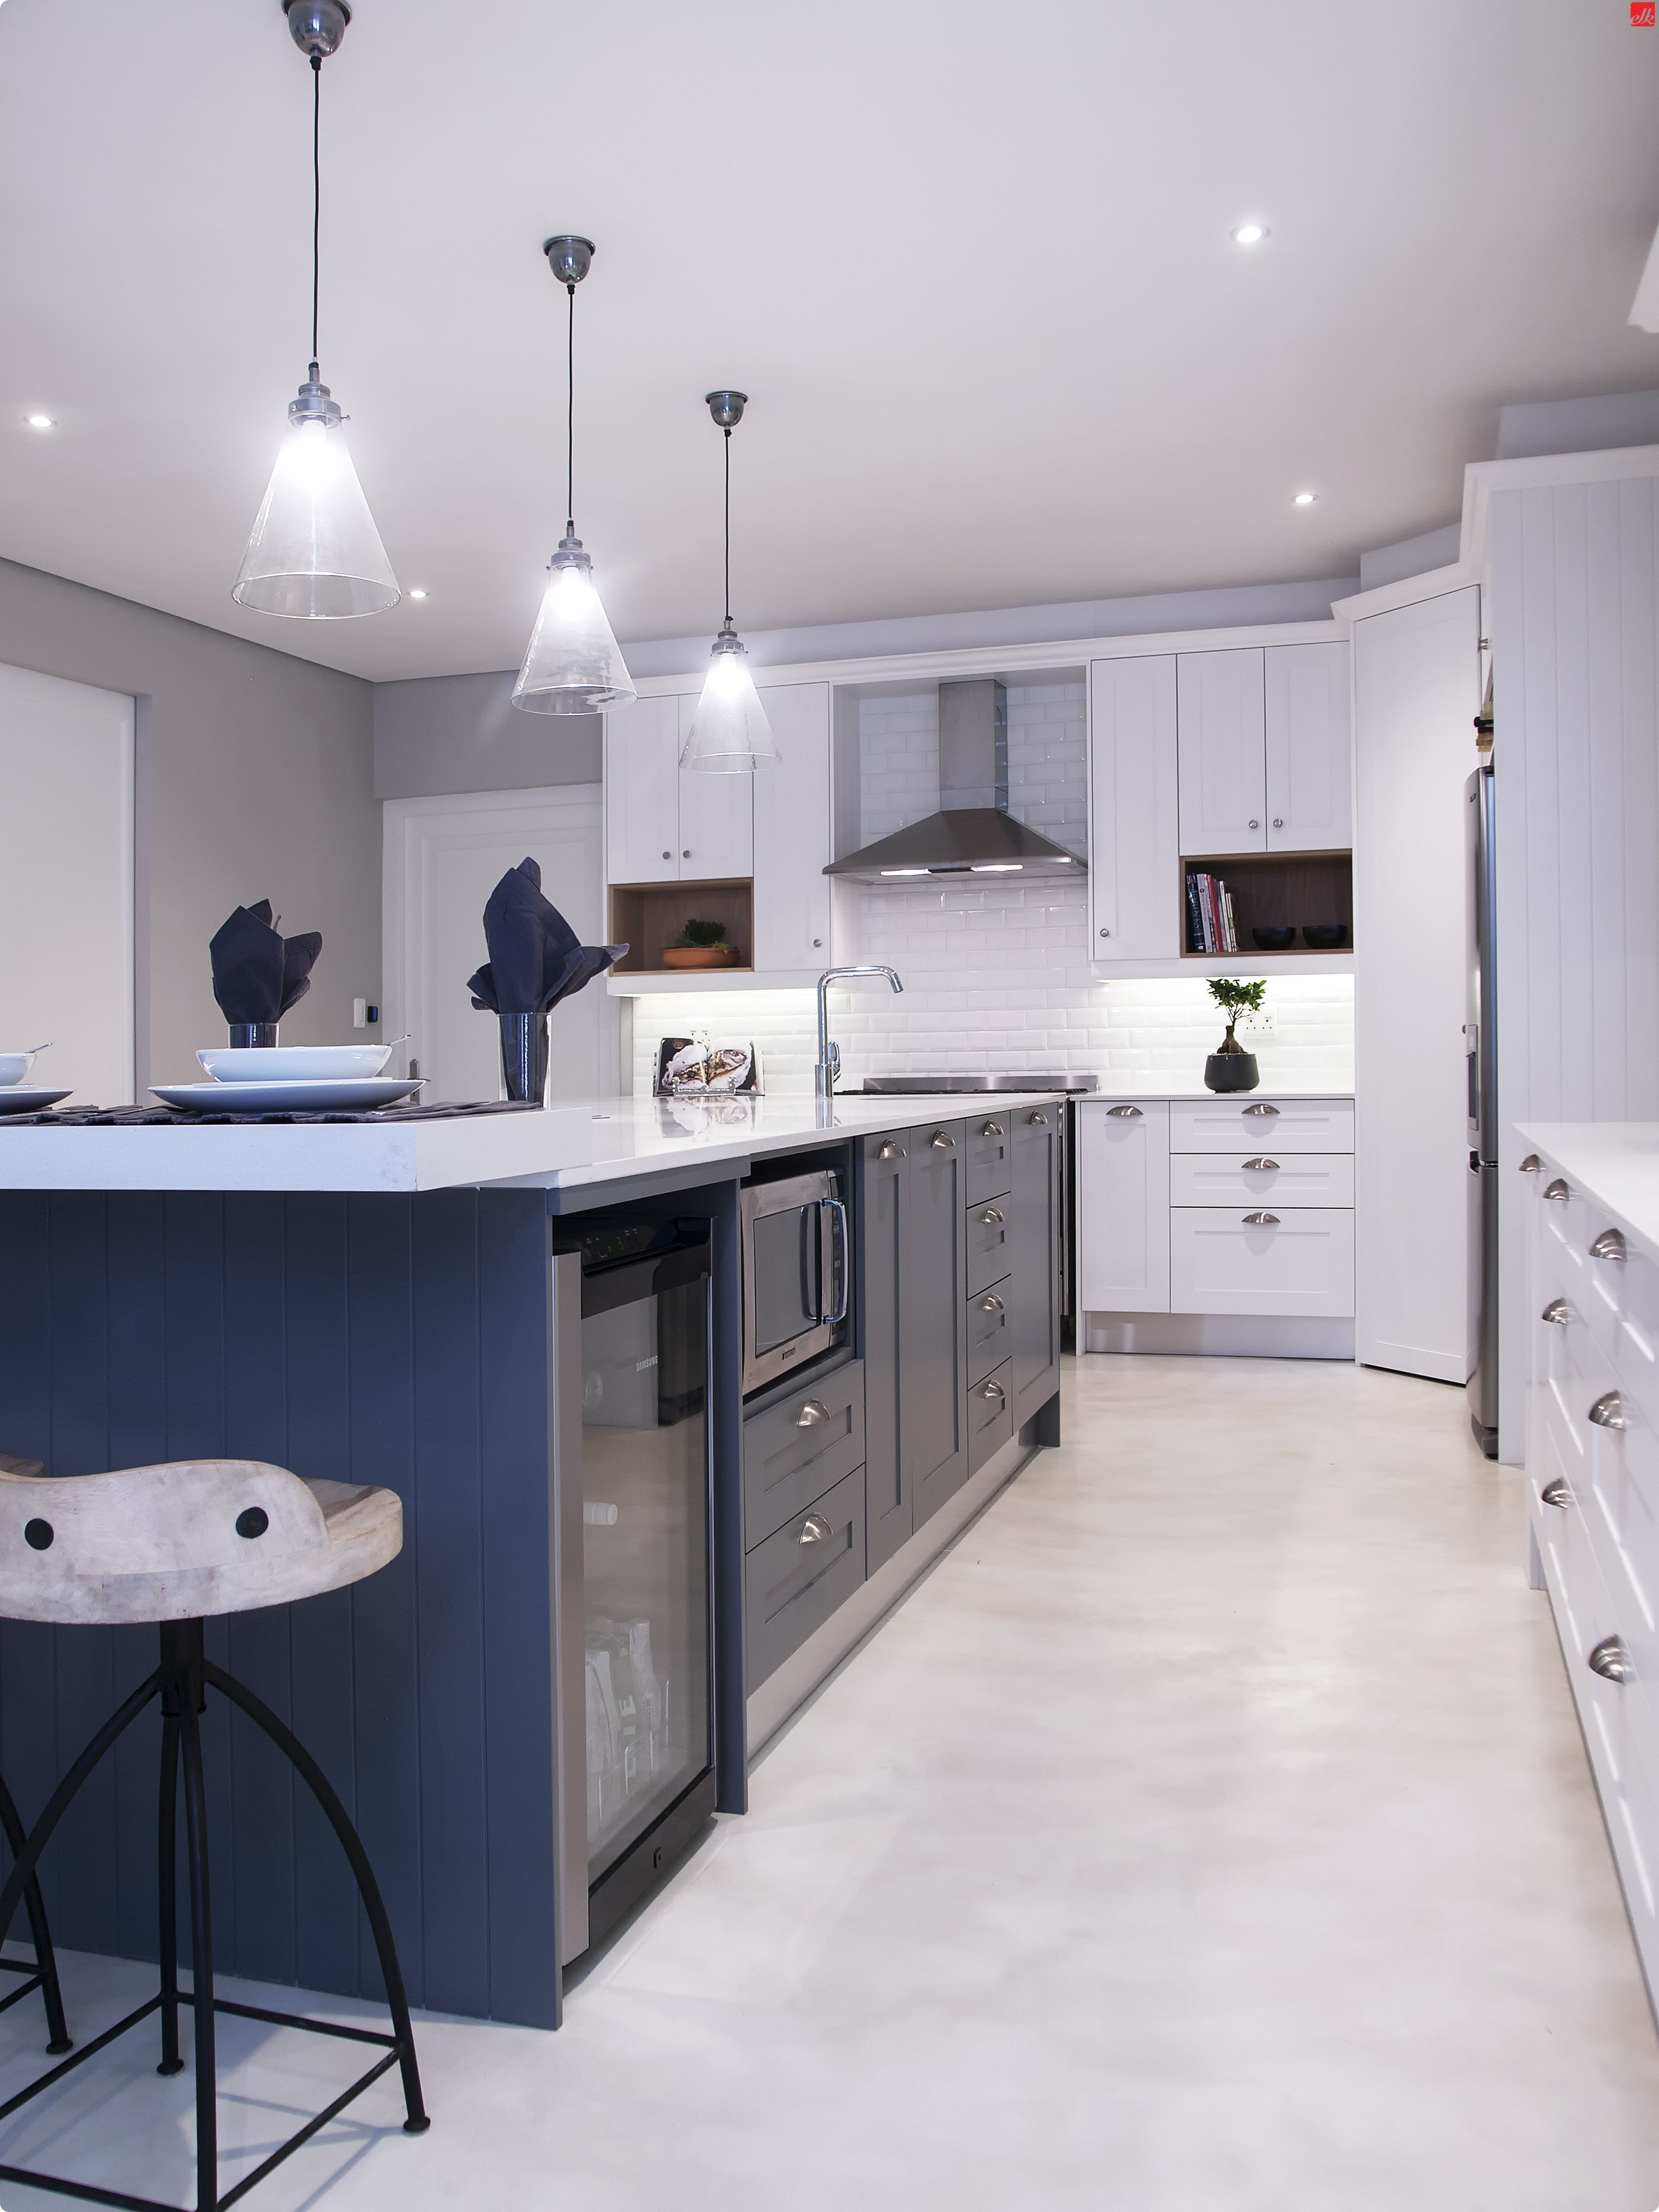 We Offer More Than Just Kitchens Home Sweet Home Kitchen Home